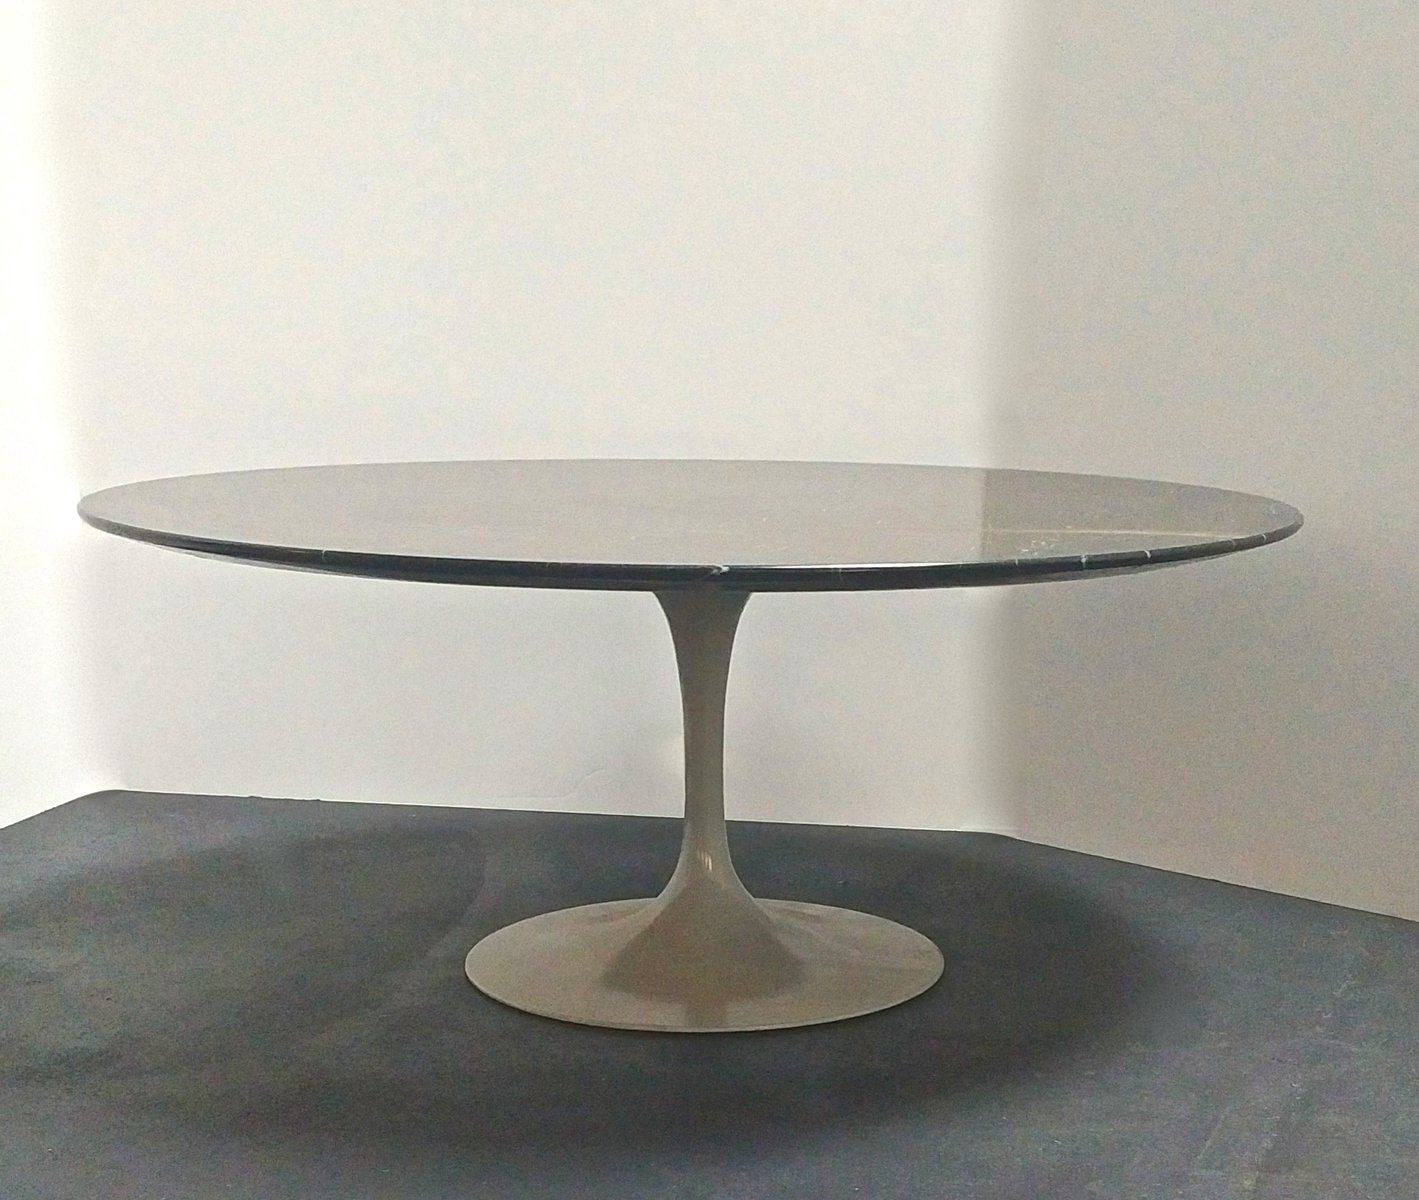 Tulip Coffee Table By Eero Saarinen 1960s For Sale At Pamono